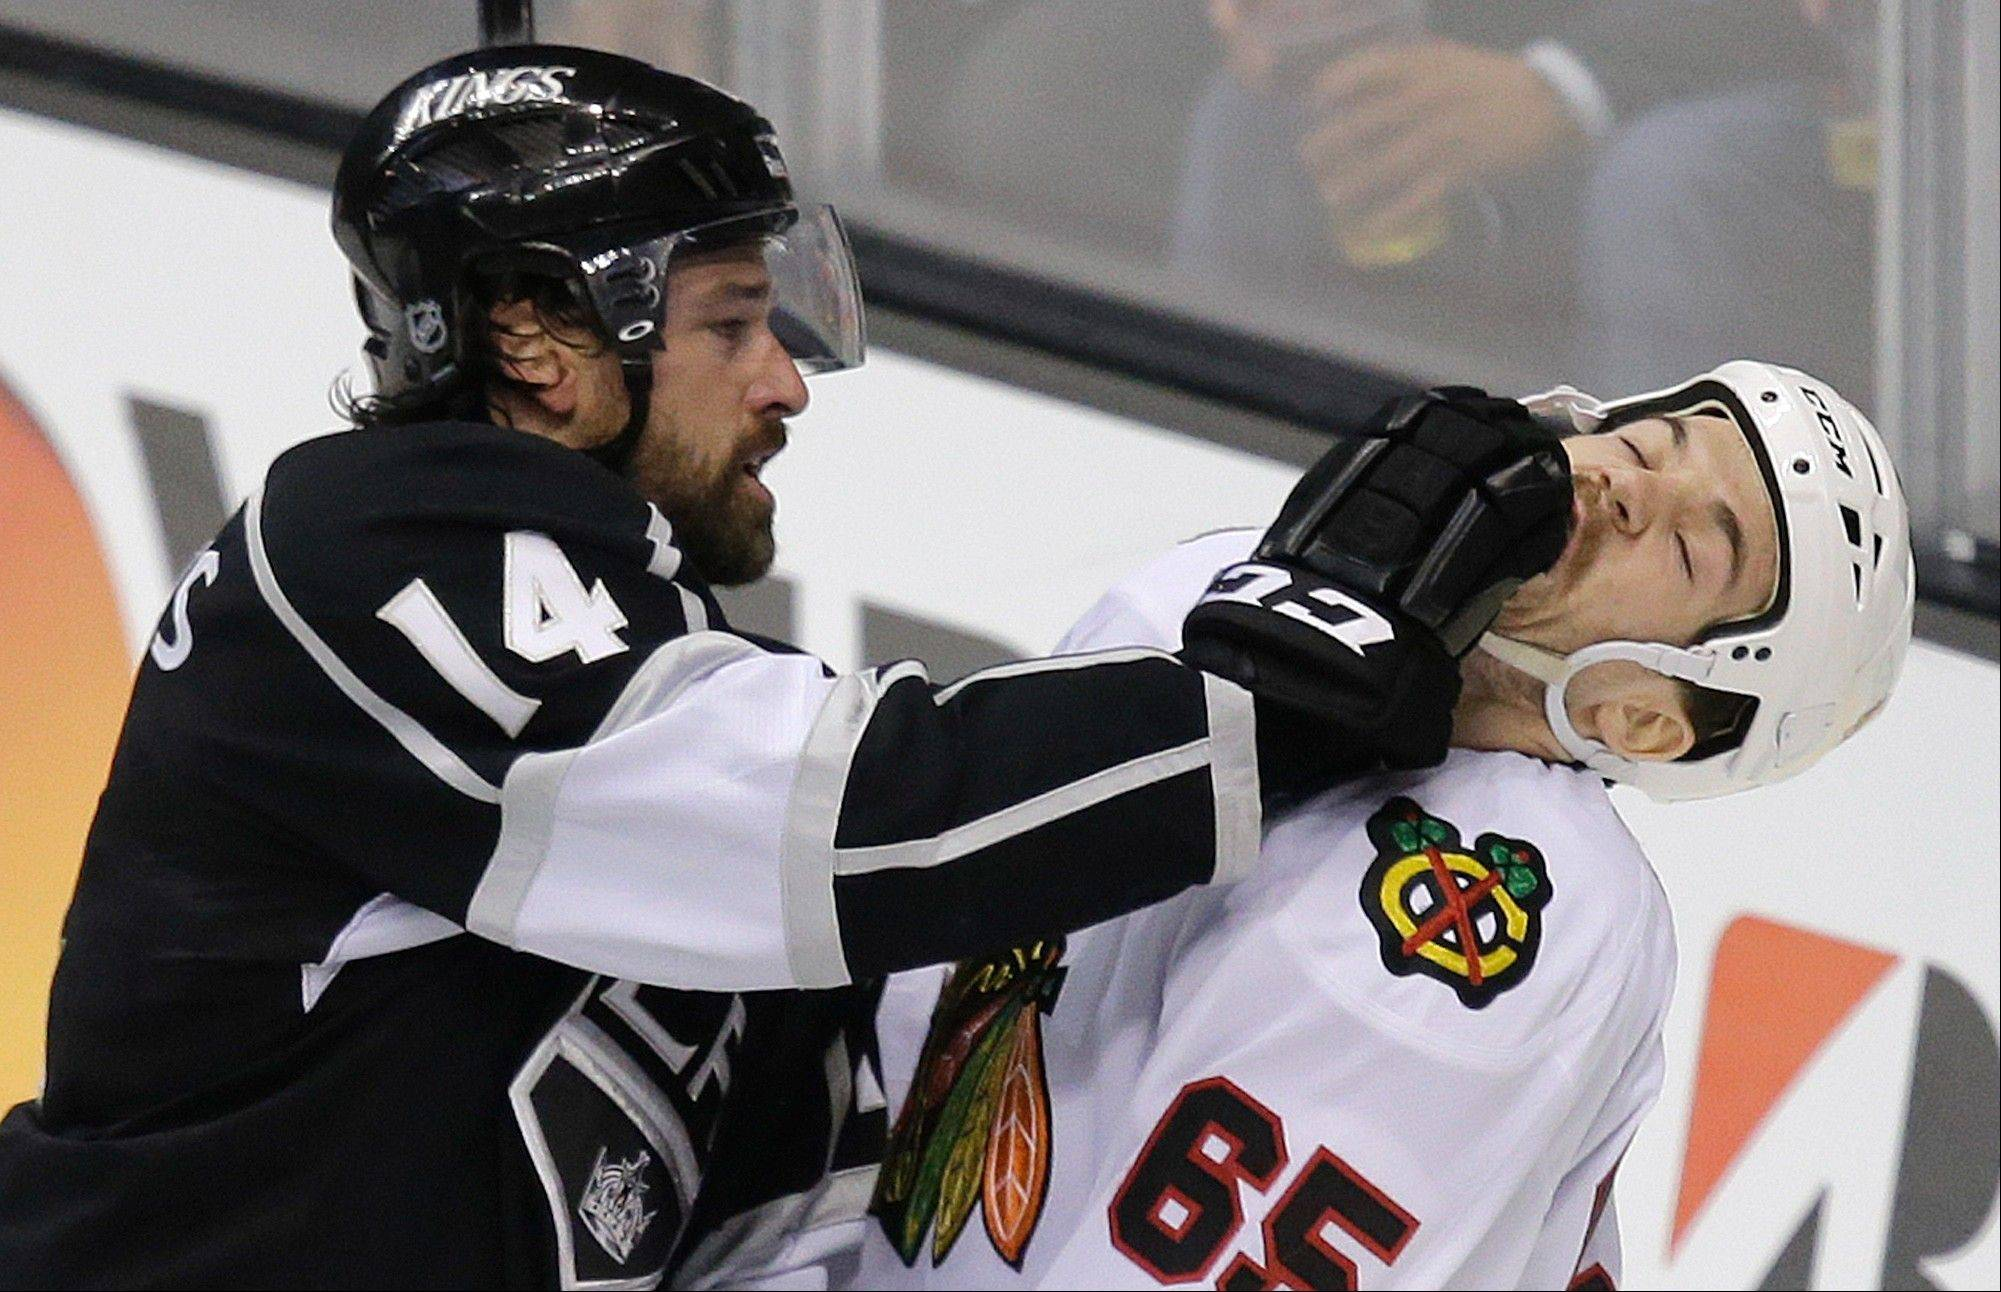 Los Angeles Kings right wing Justin Williams (14) fights with Chicago Blackhawks center Andrew Shaw (65) during the second period of Game 3 of the NHL hockey Stanley Cup playoffs Western Conference finals, Tuesday, June 4, 2013 in Los Angeles.